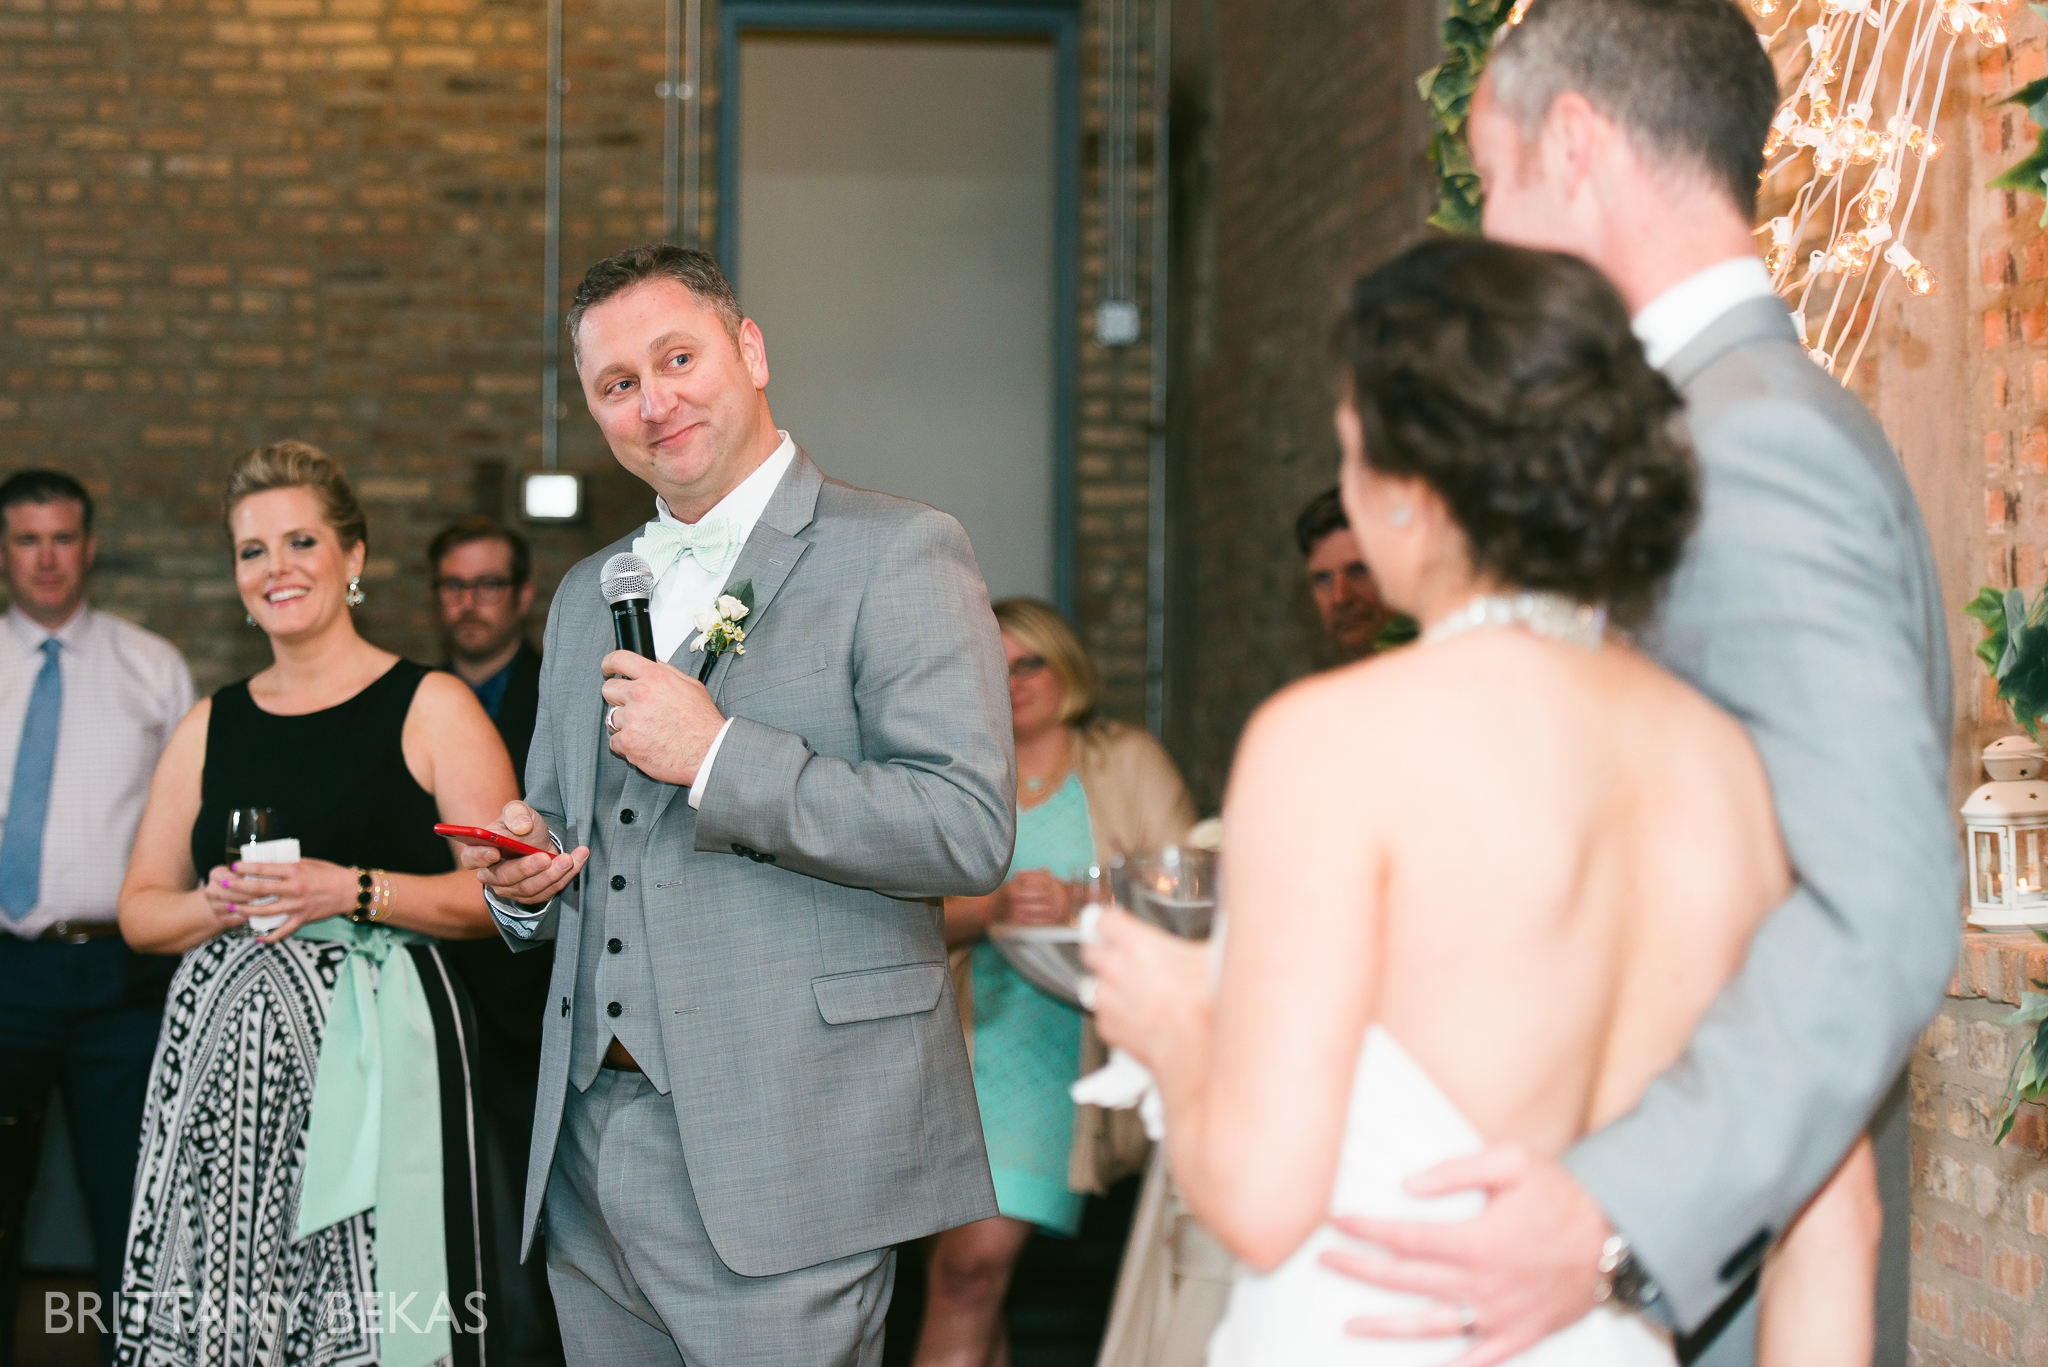 Chicago Wedding - Ravenswood Event Center Wedding Photos_0045